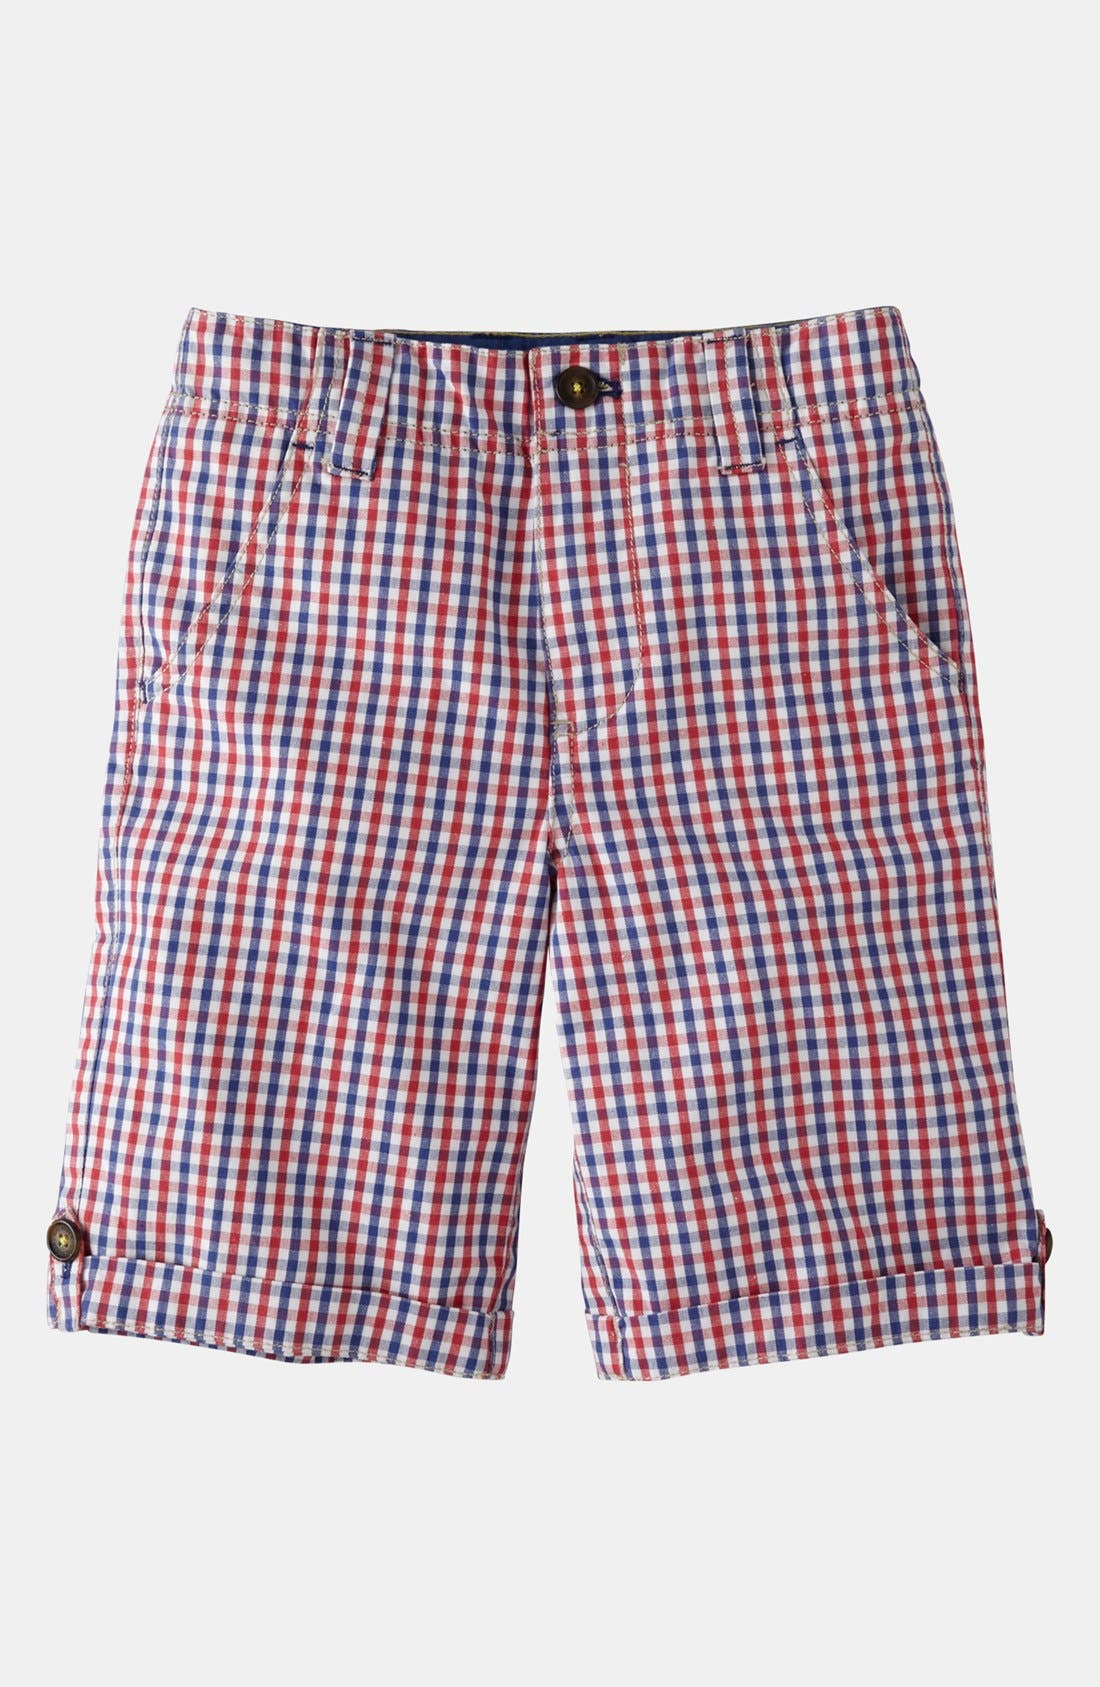 Alternate Image 1 Selected - Mini Boden Summer Shorts (Little Boys & Big Boys)